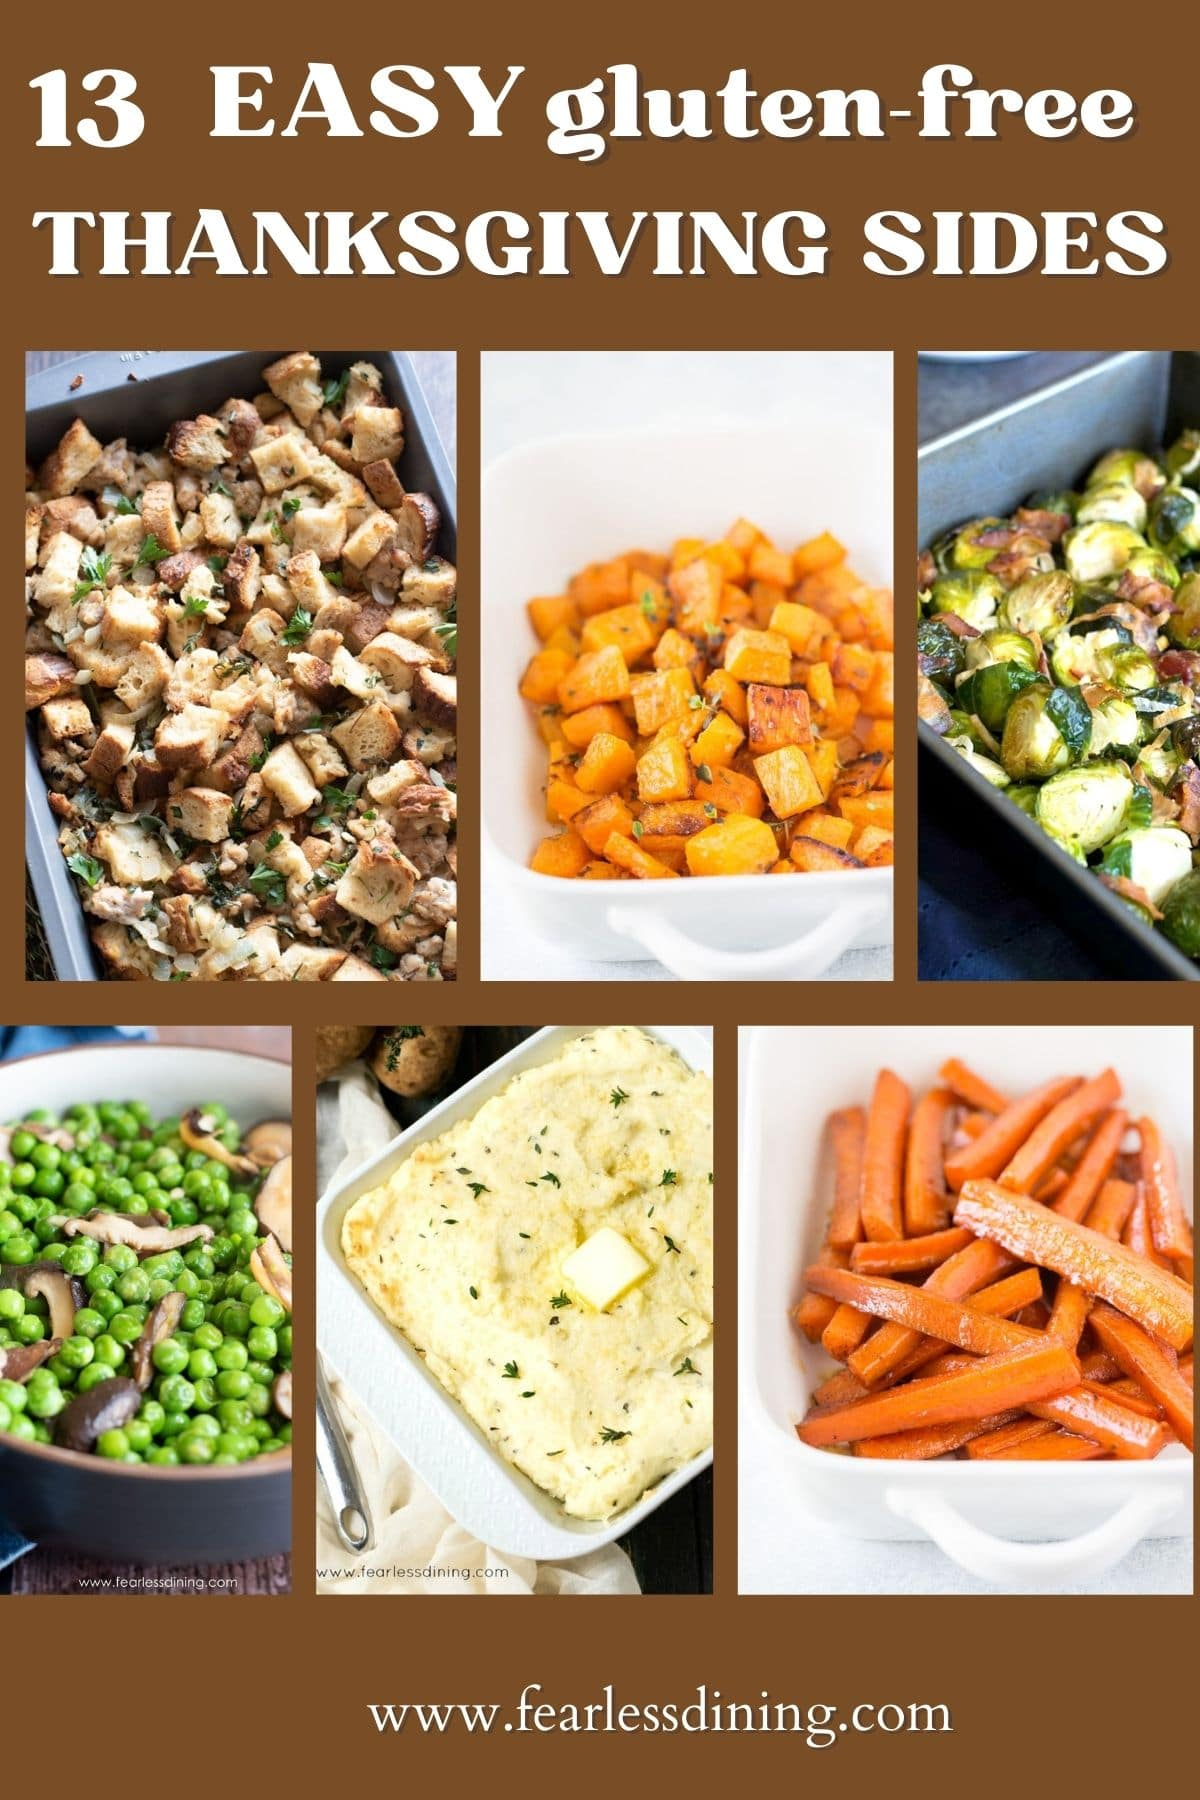 a collage of thanksgiving side dish photos